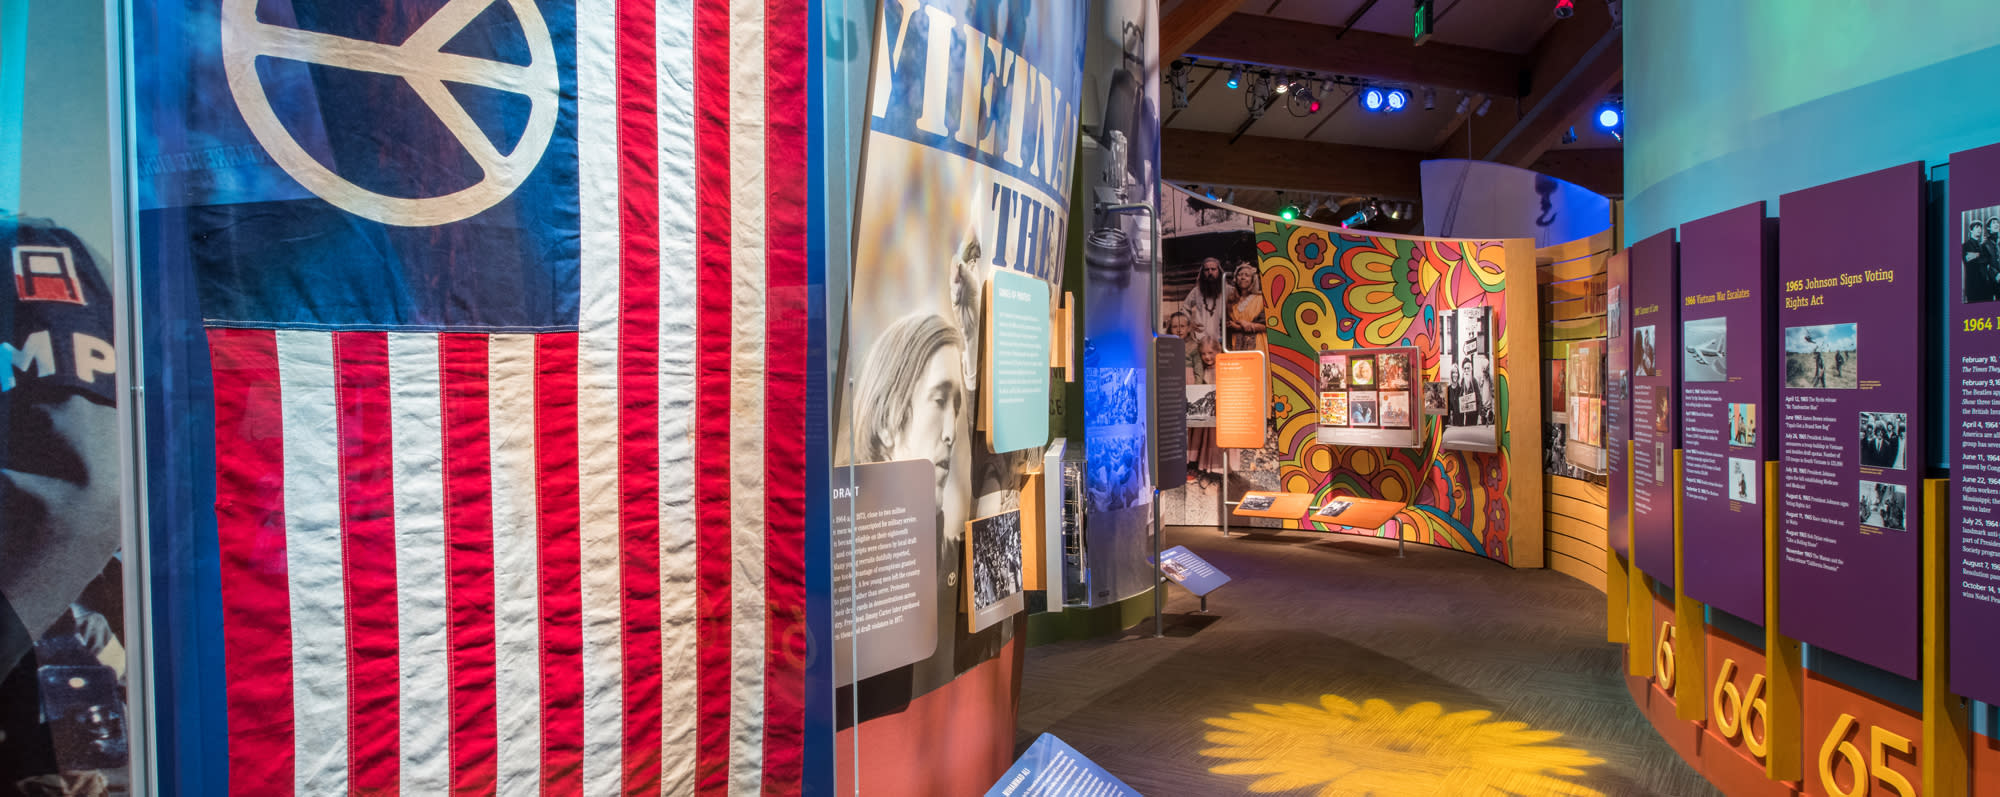 A look at the inside of the Museum at Bethel Woods displays and American flag with peace sign